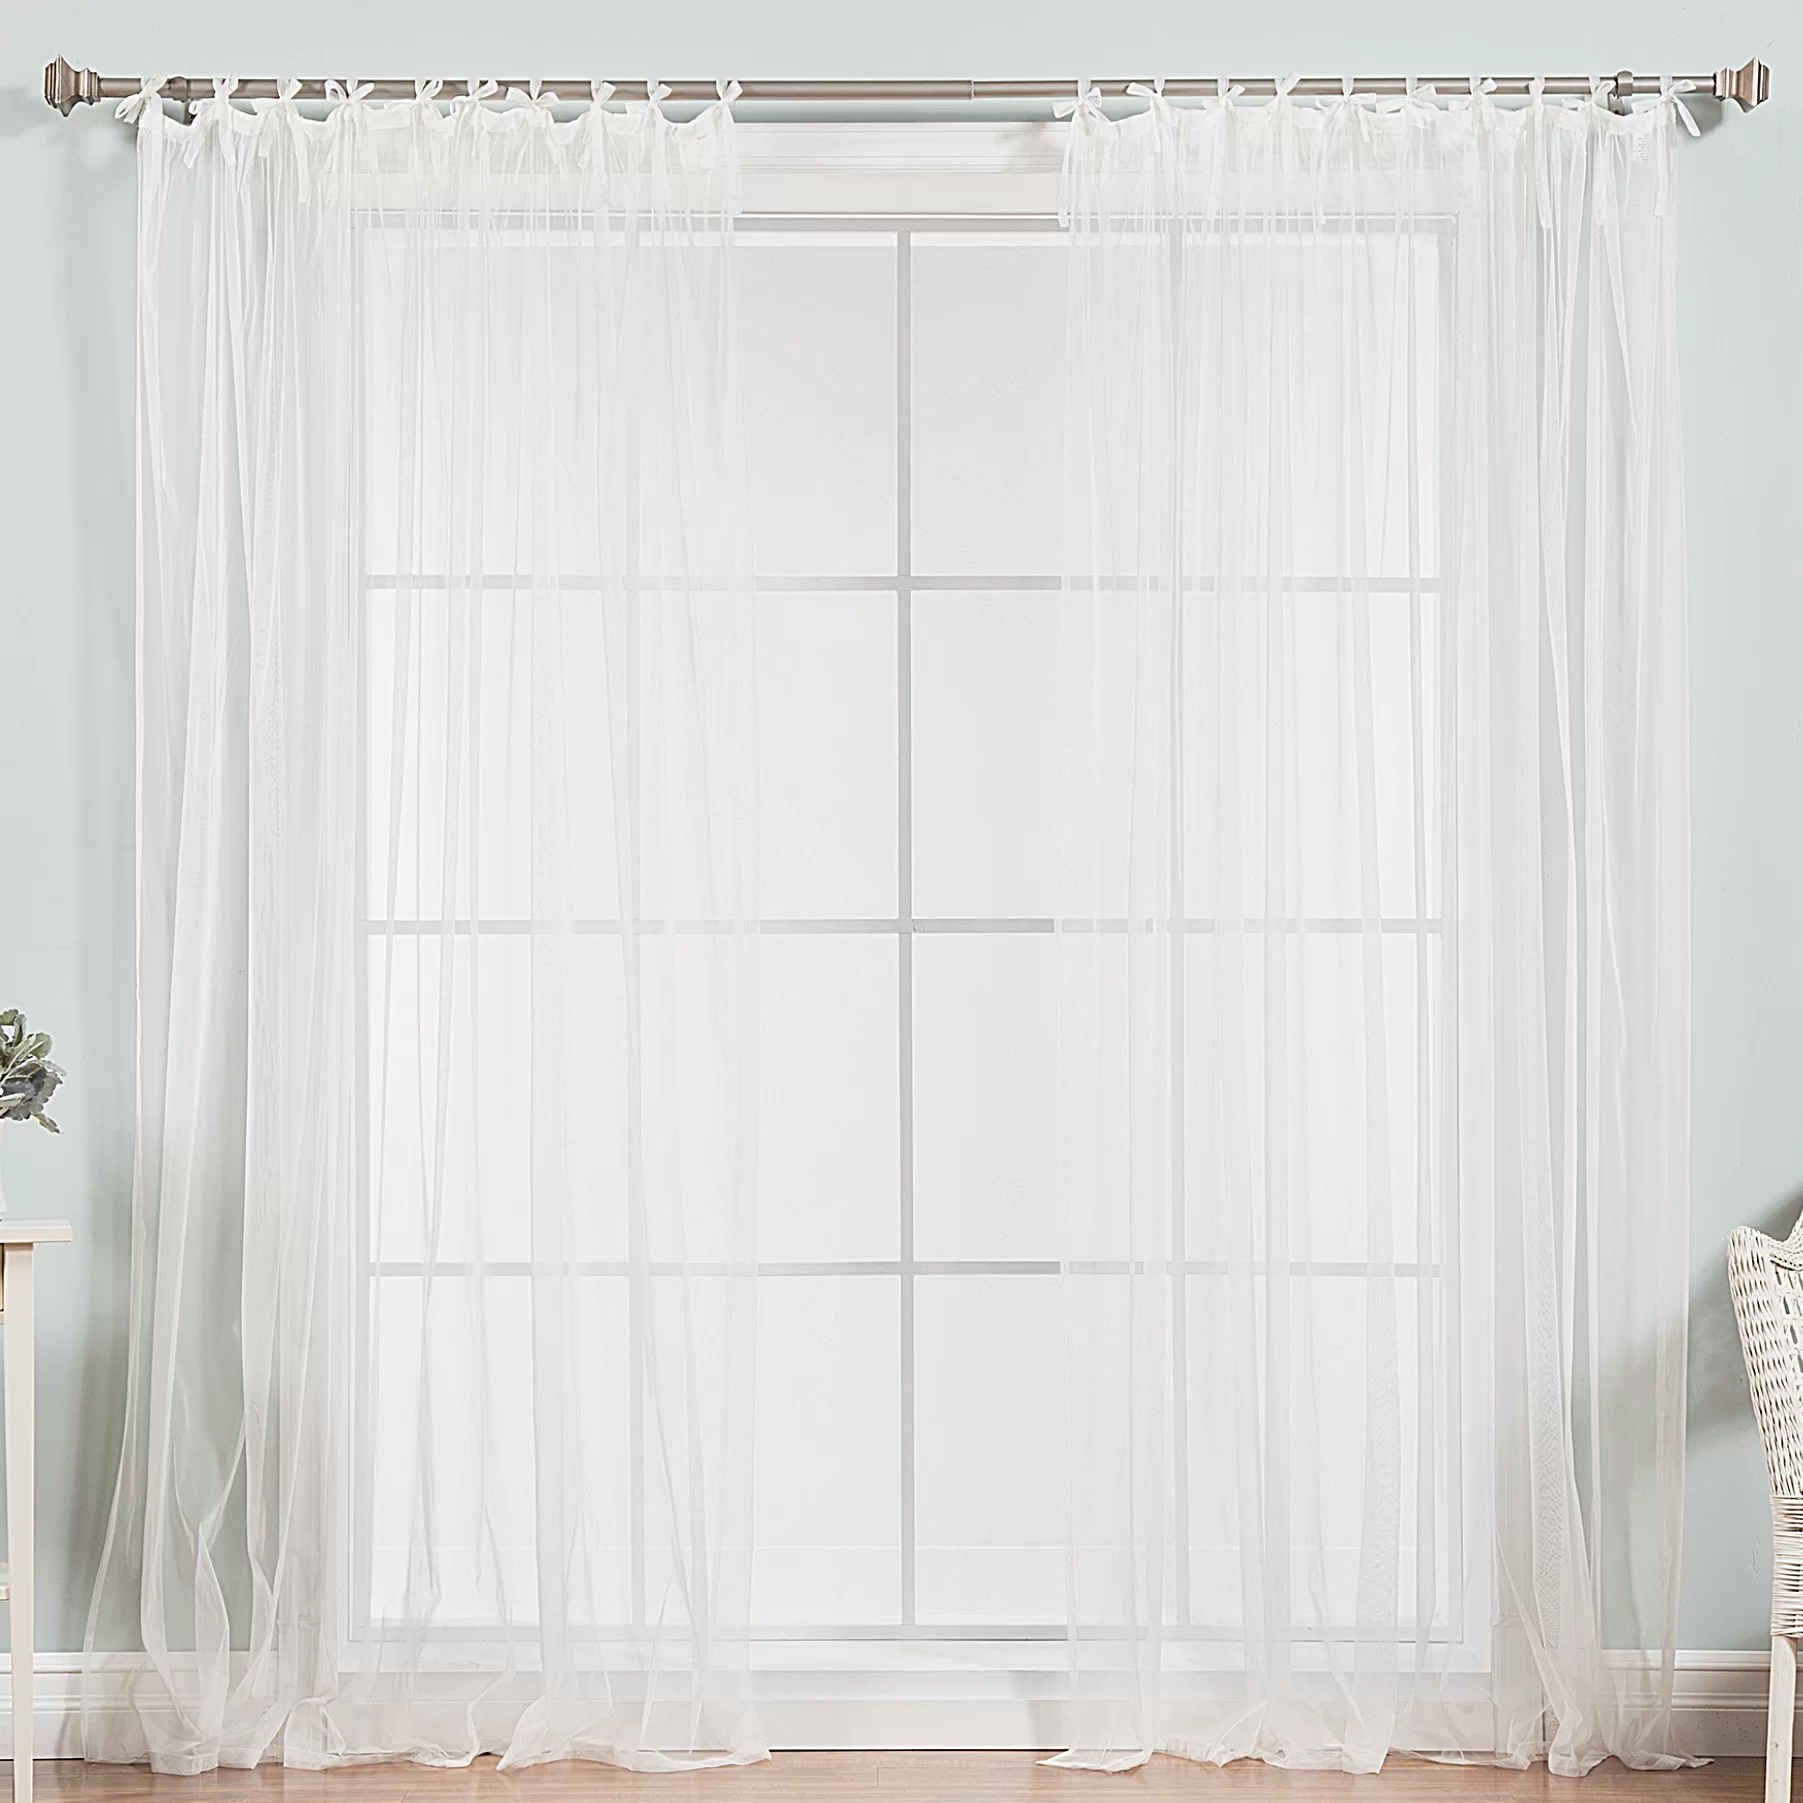 Tab Top Curtain Jeanlouis Solid Sheer Tab Top Curtain Panels